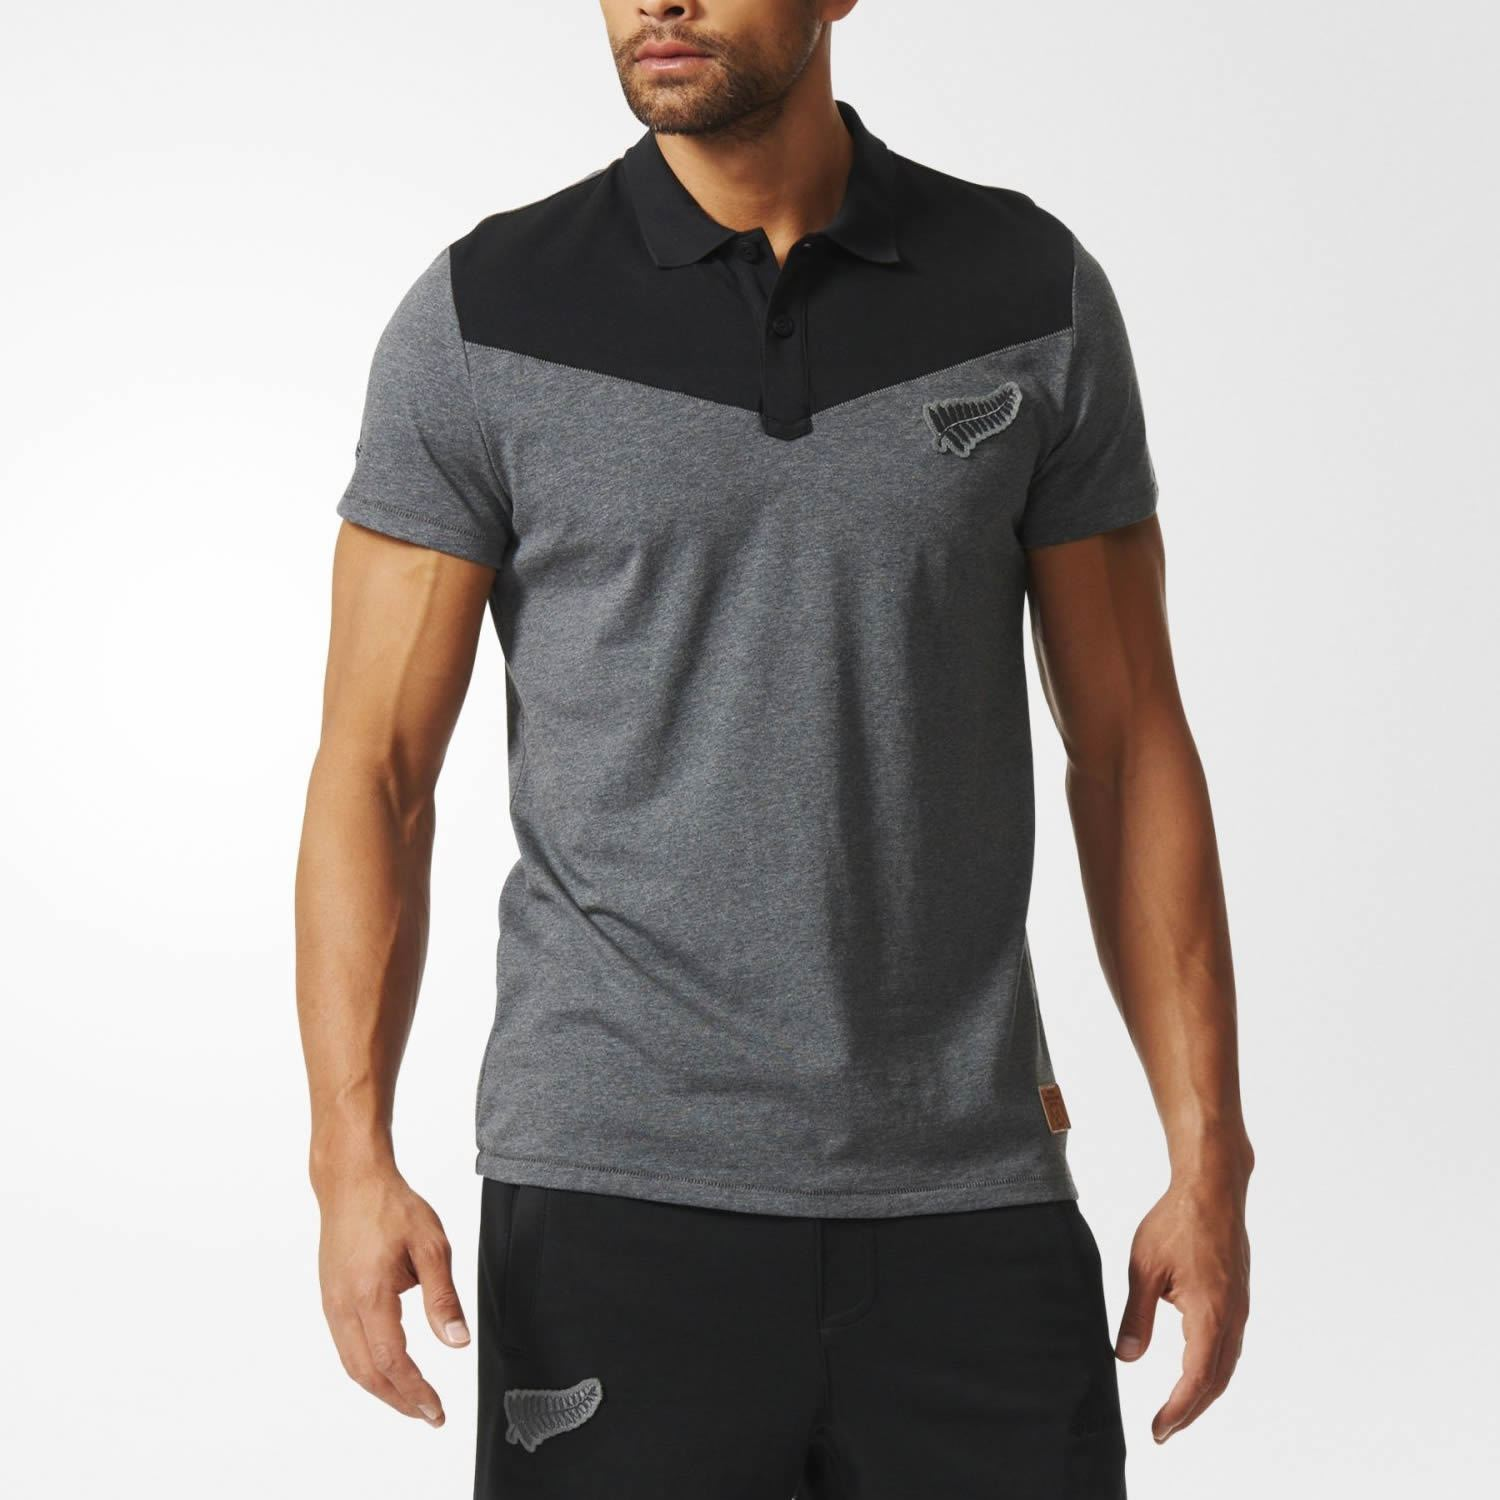 Grey Cup Shirt Adidas New Black Men's World Polo About Rugby All Details Zealand Blacks 4LR5Aj